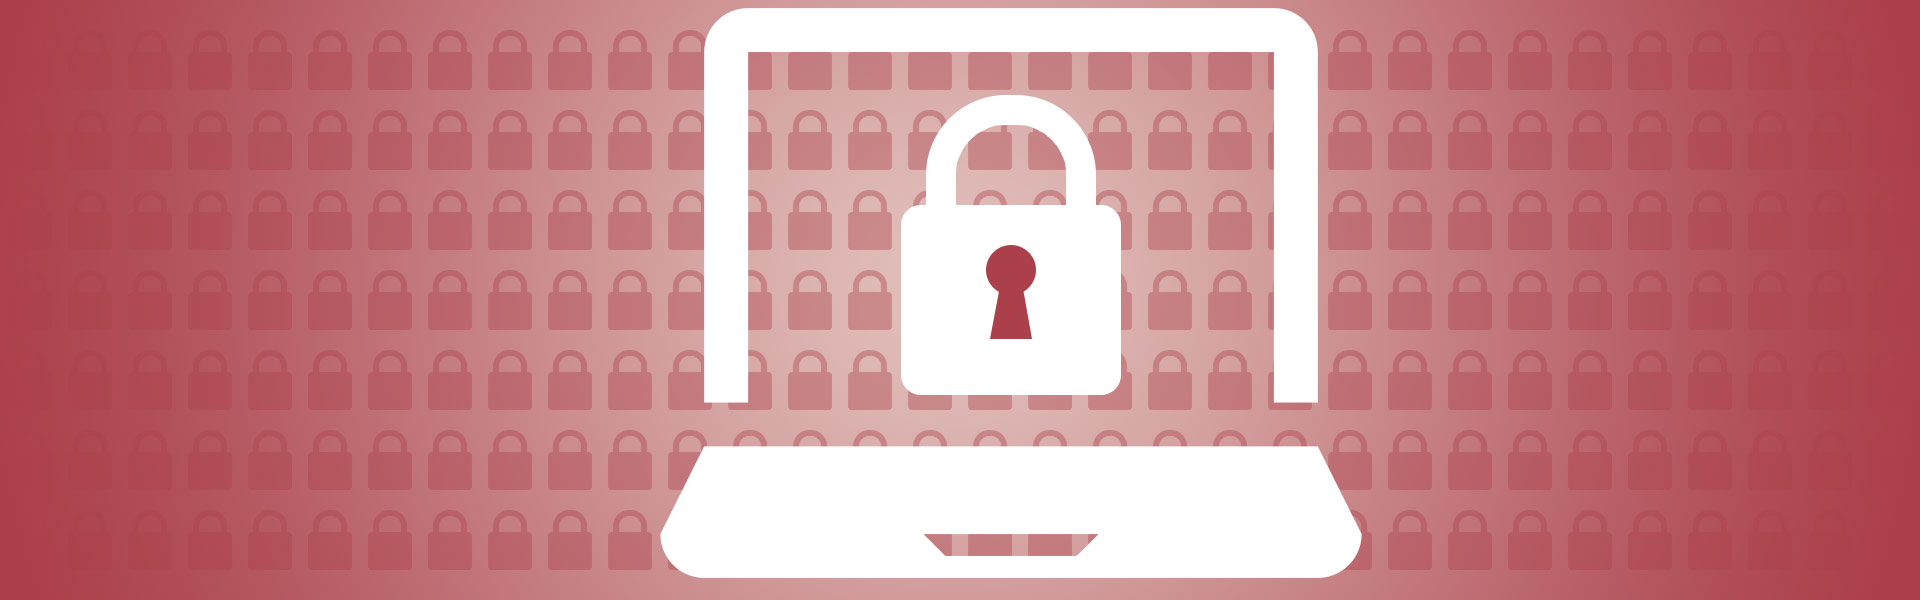 Cyber threats: things you need to know